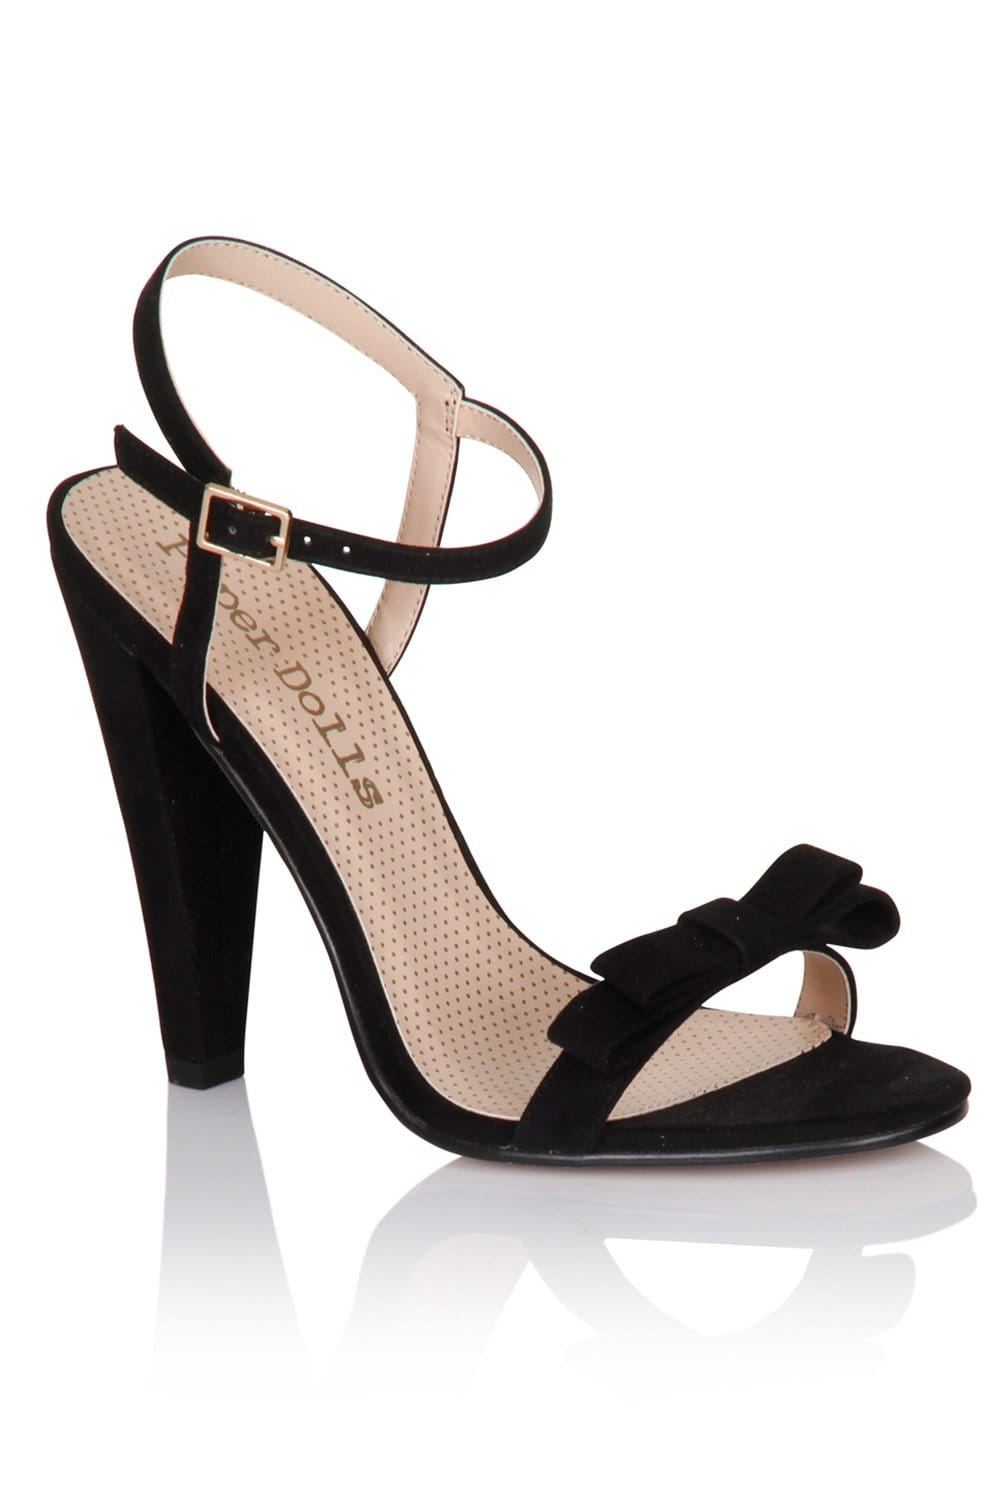 New shoes are always a good idea. Put your feet on a pedestal in this black high heels edit. Seasonless but a forever-favourite, these black heels are vying for a place in your 'drobe.